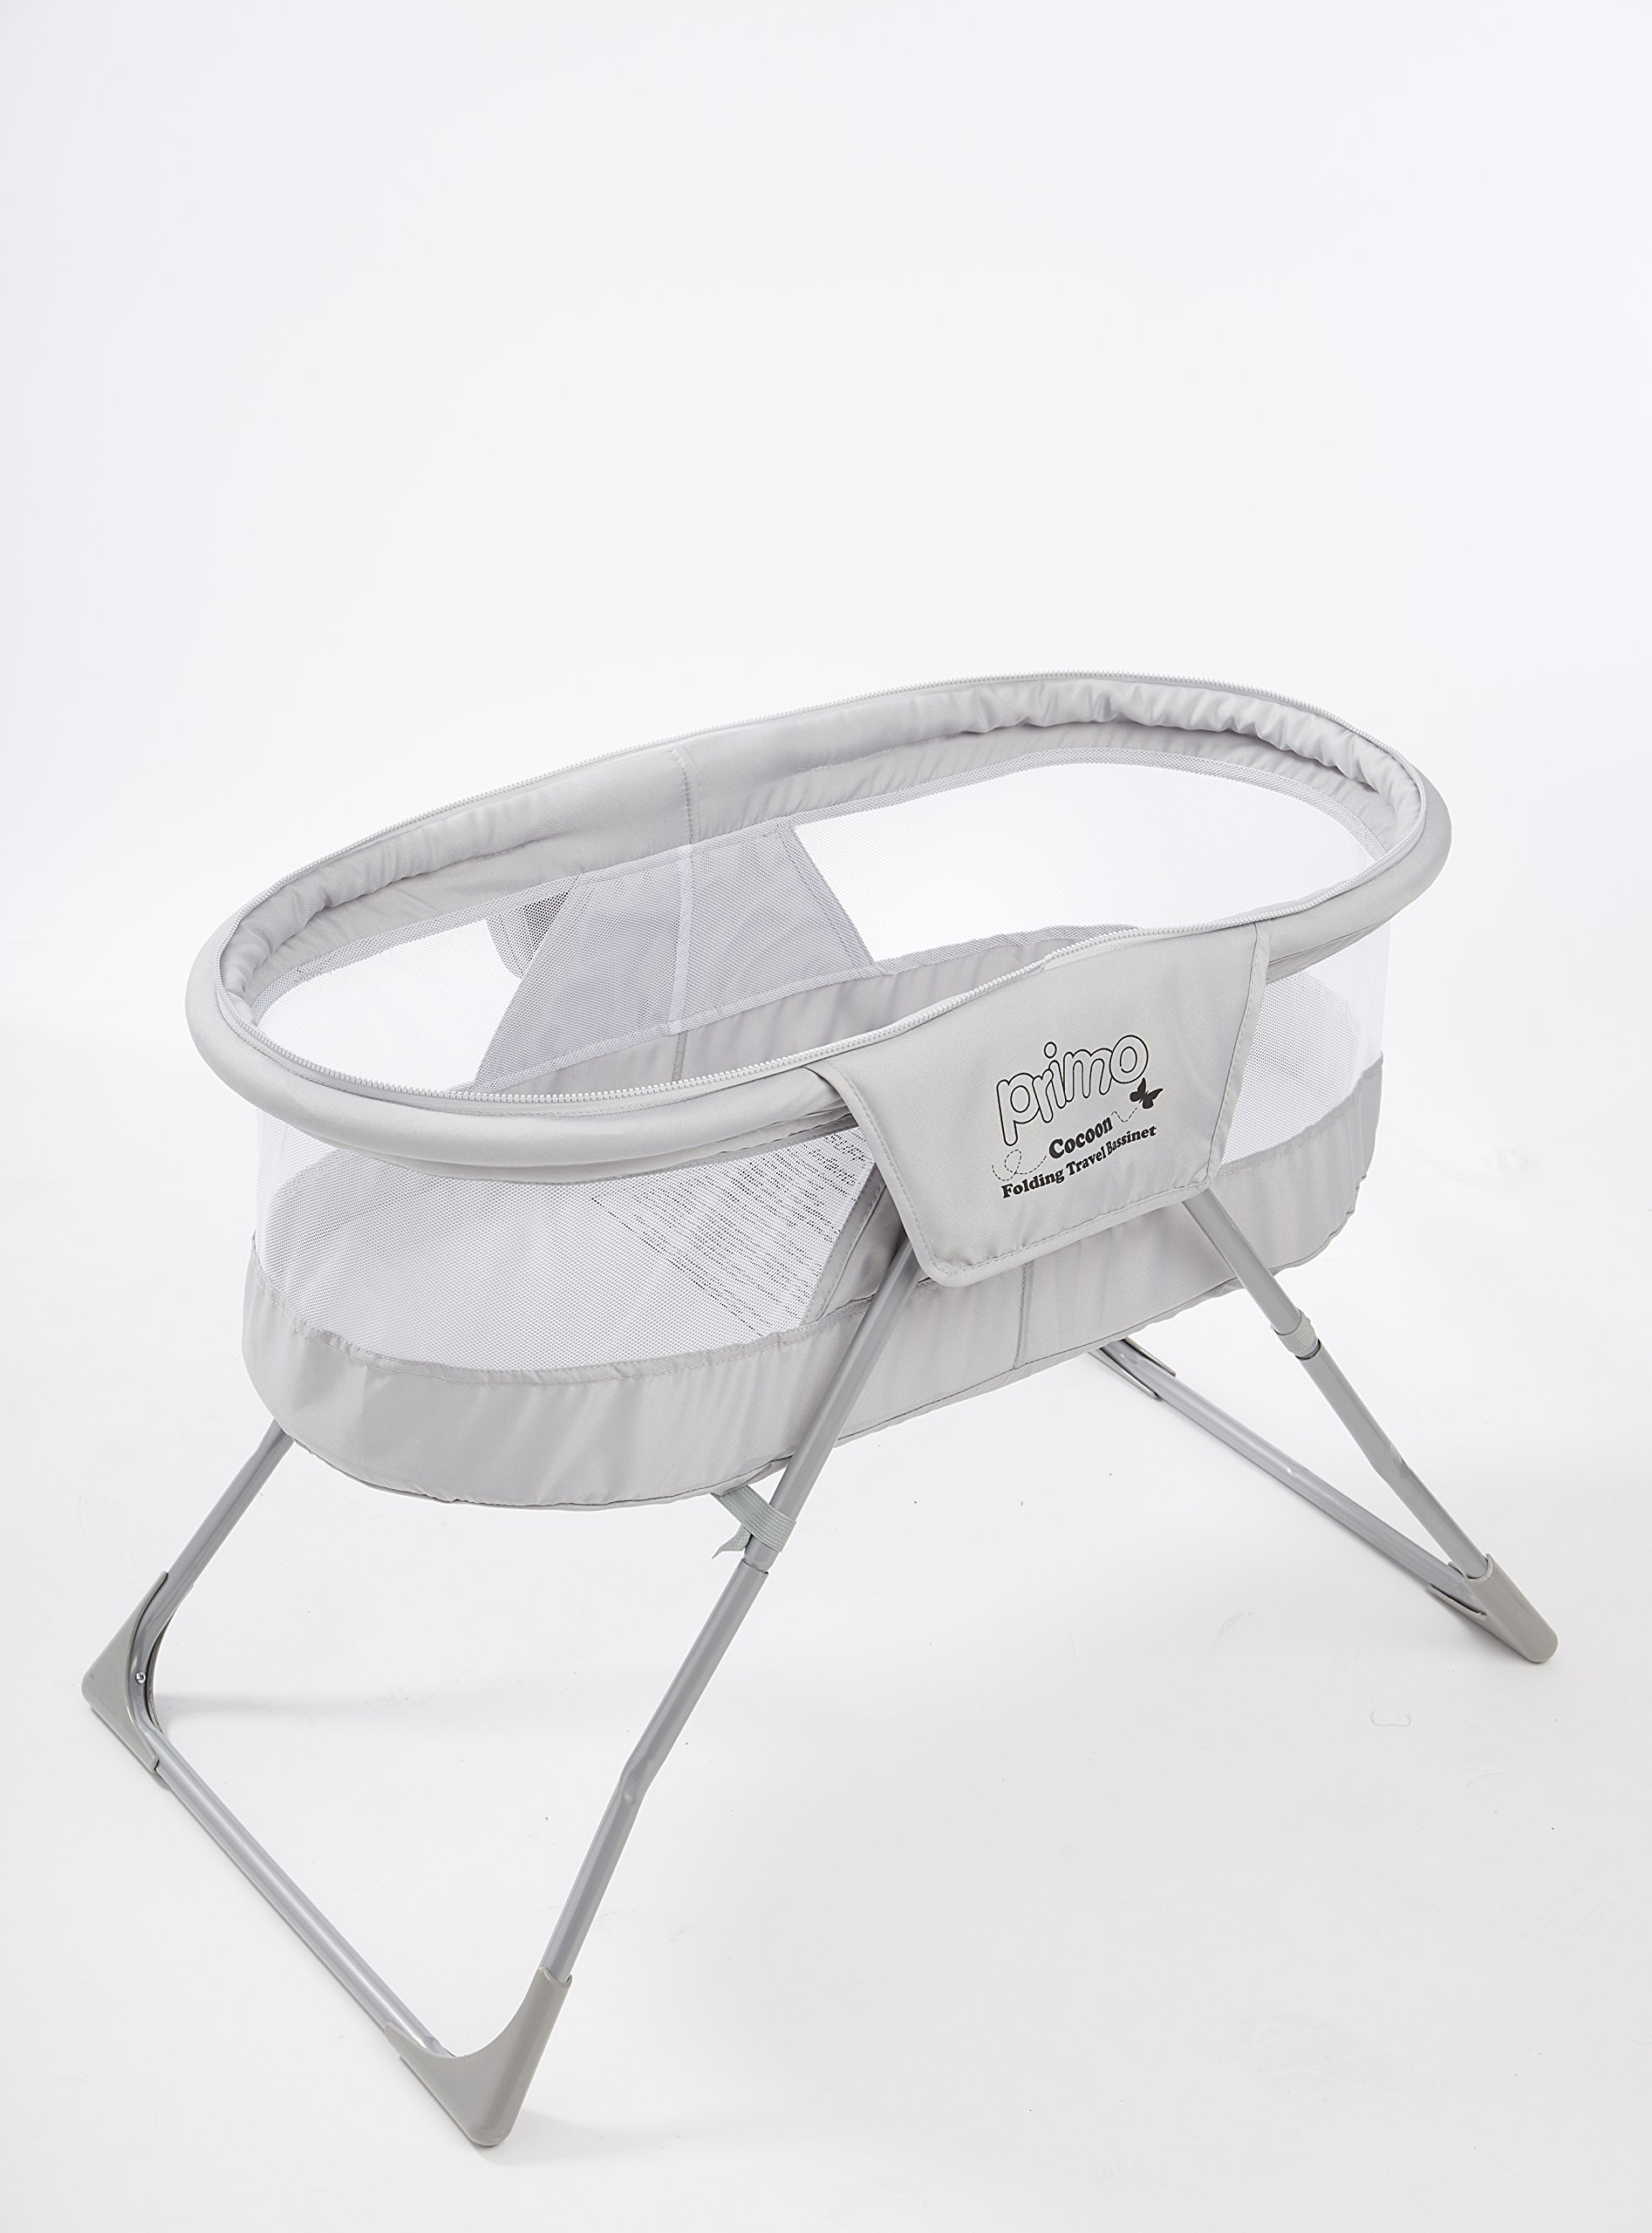 Primo Cocoon Folding Indoor & Outdoor Travel Bassinet with Bag, Grey